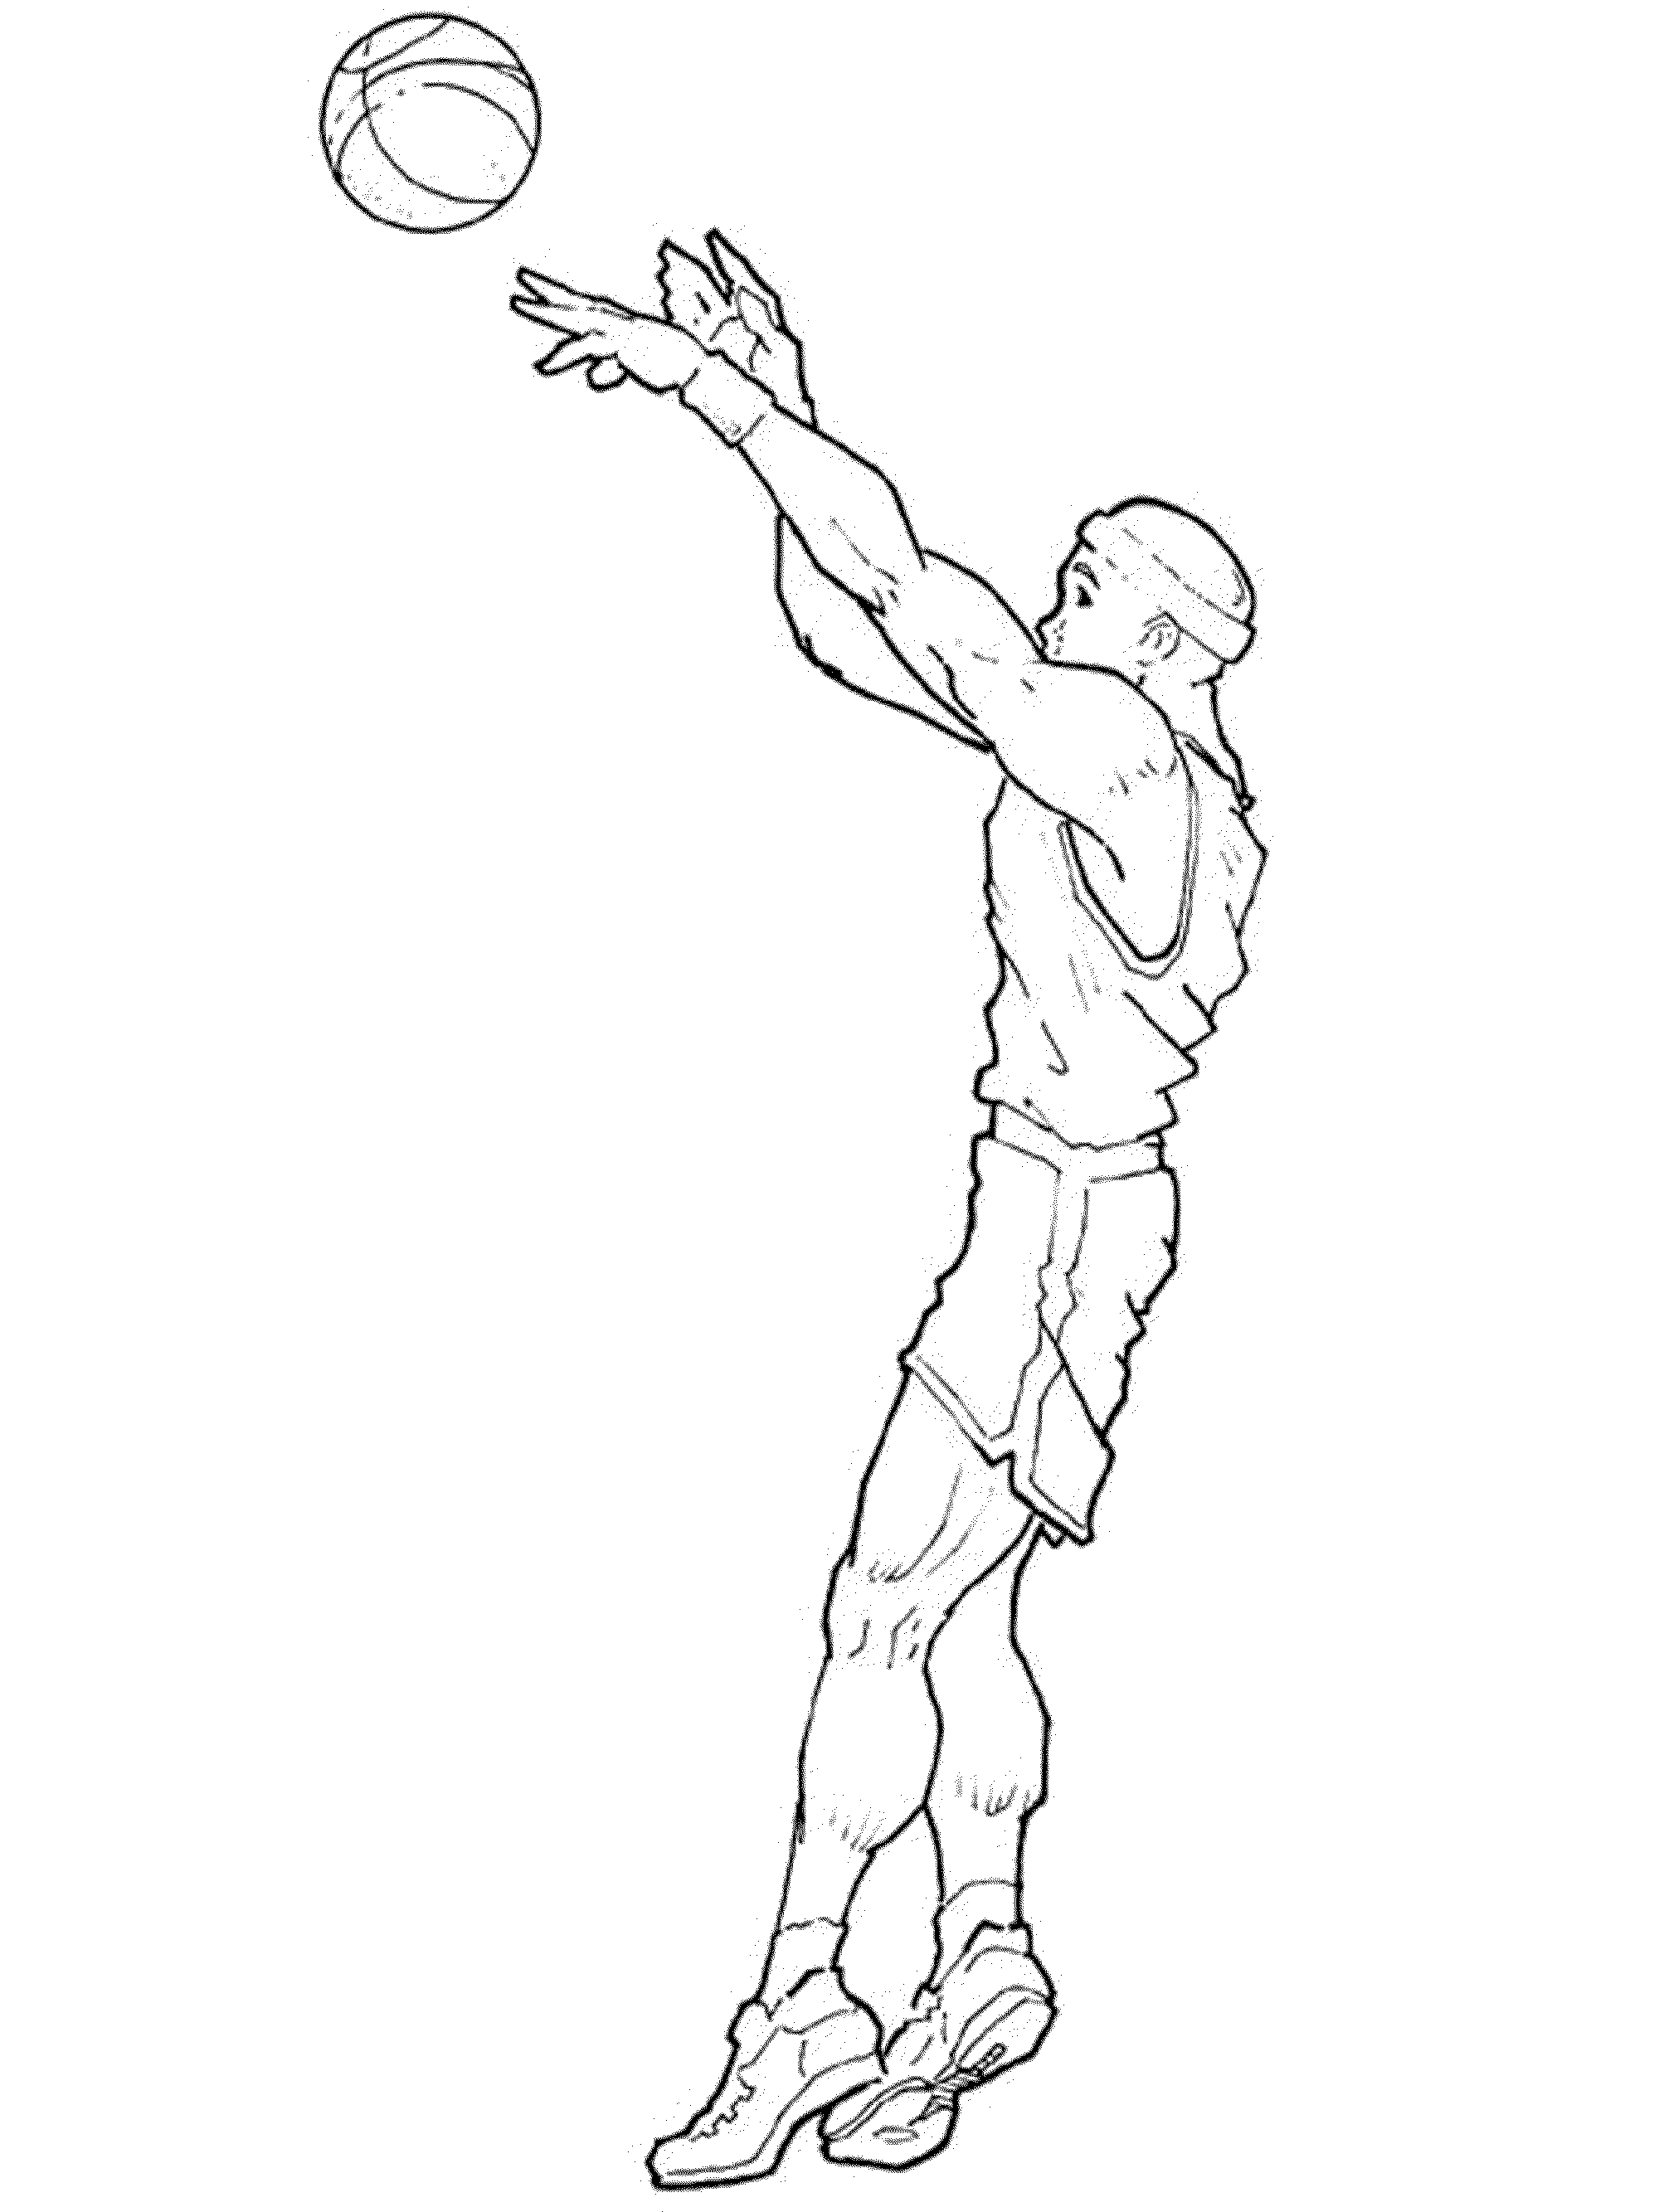 printable-basketball-coloring-pages | | BestAppsForKids.com